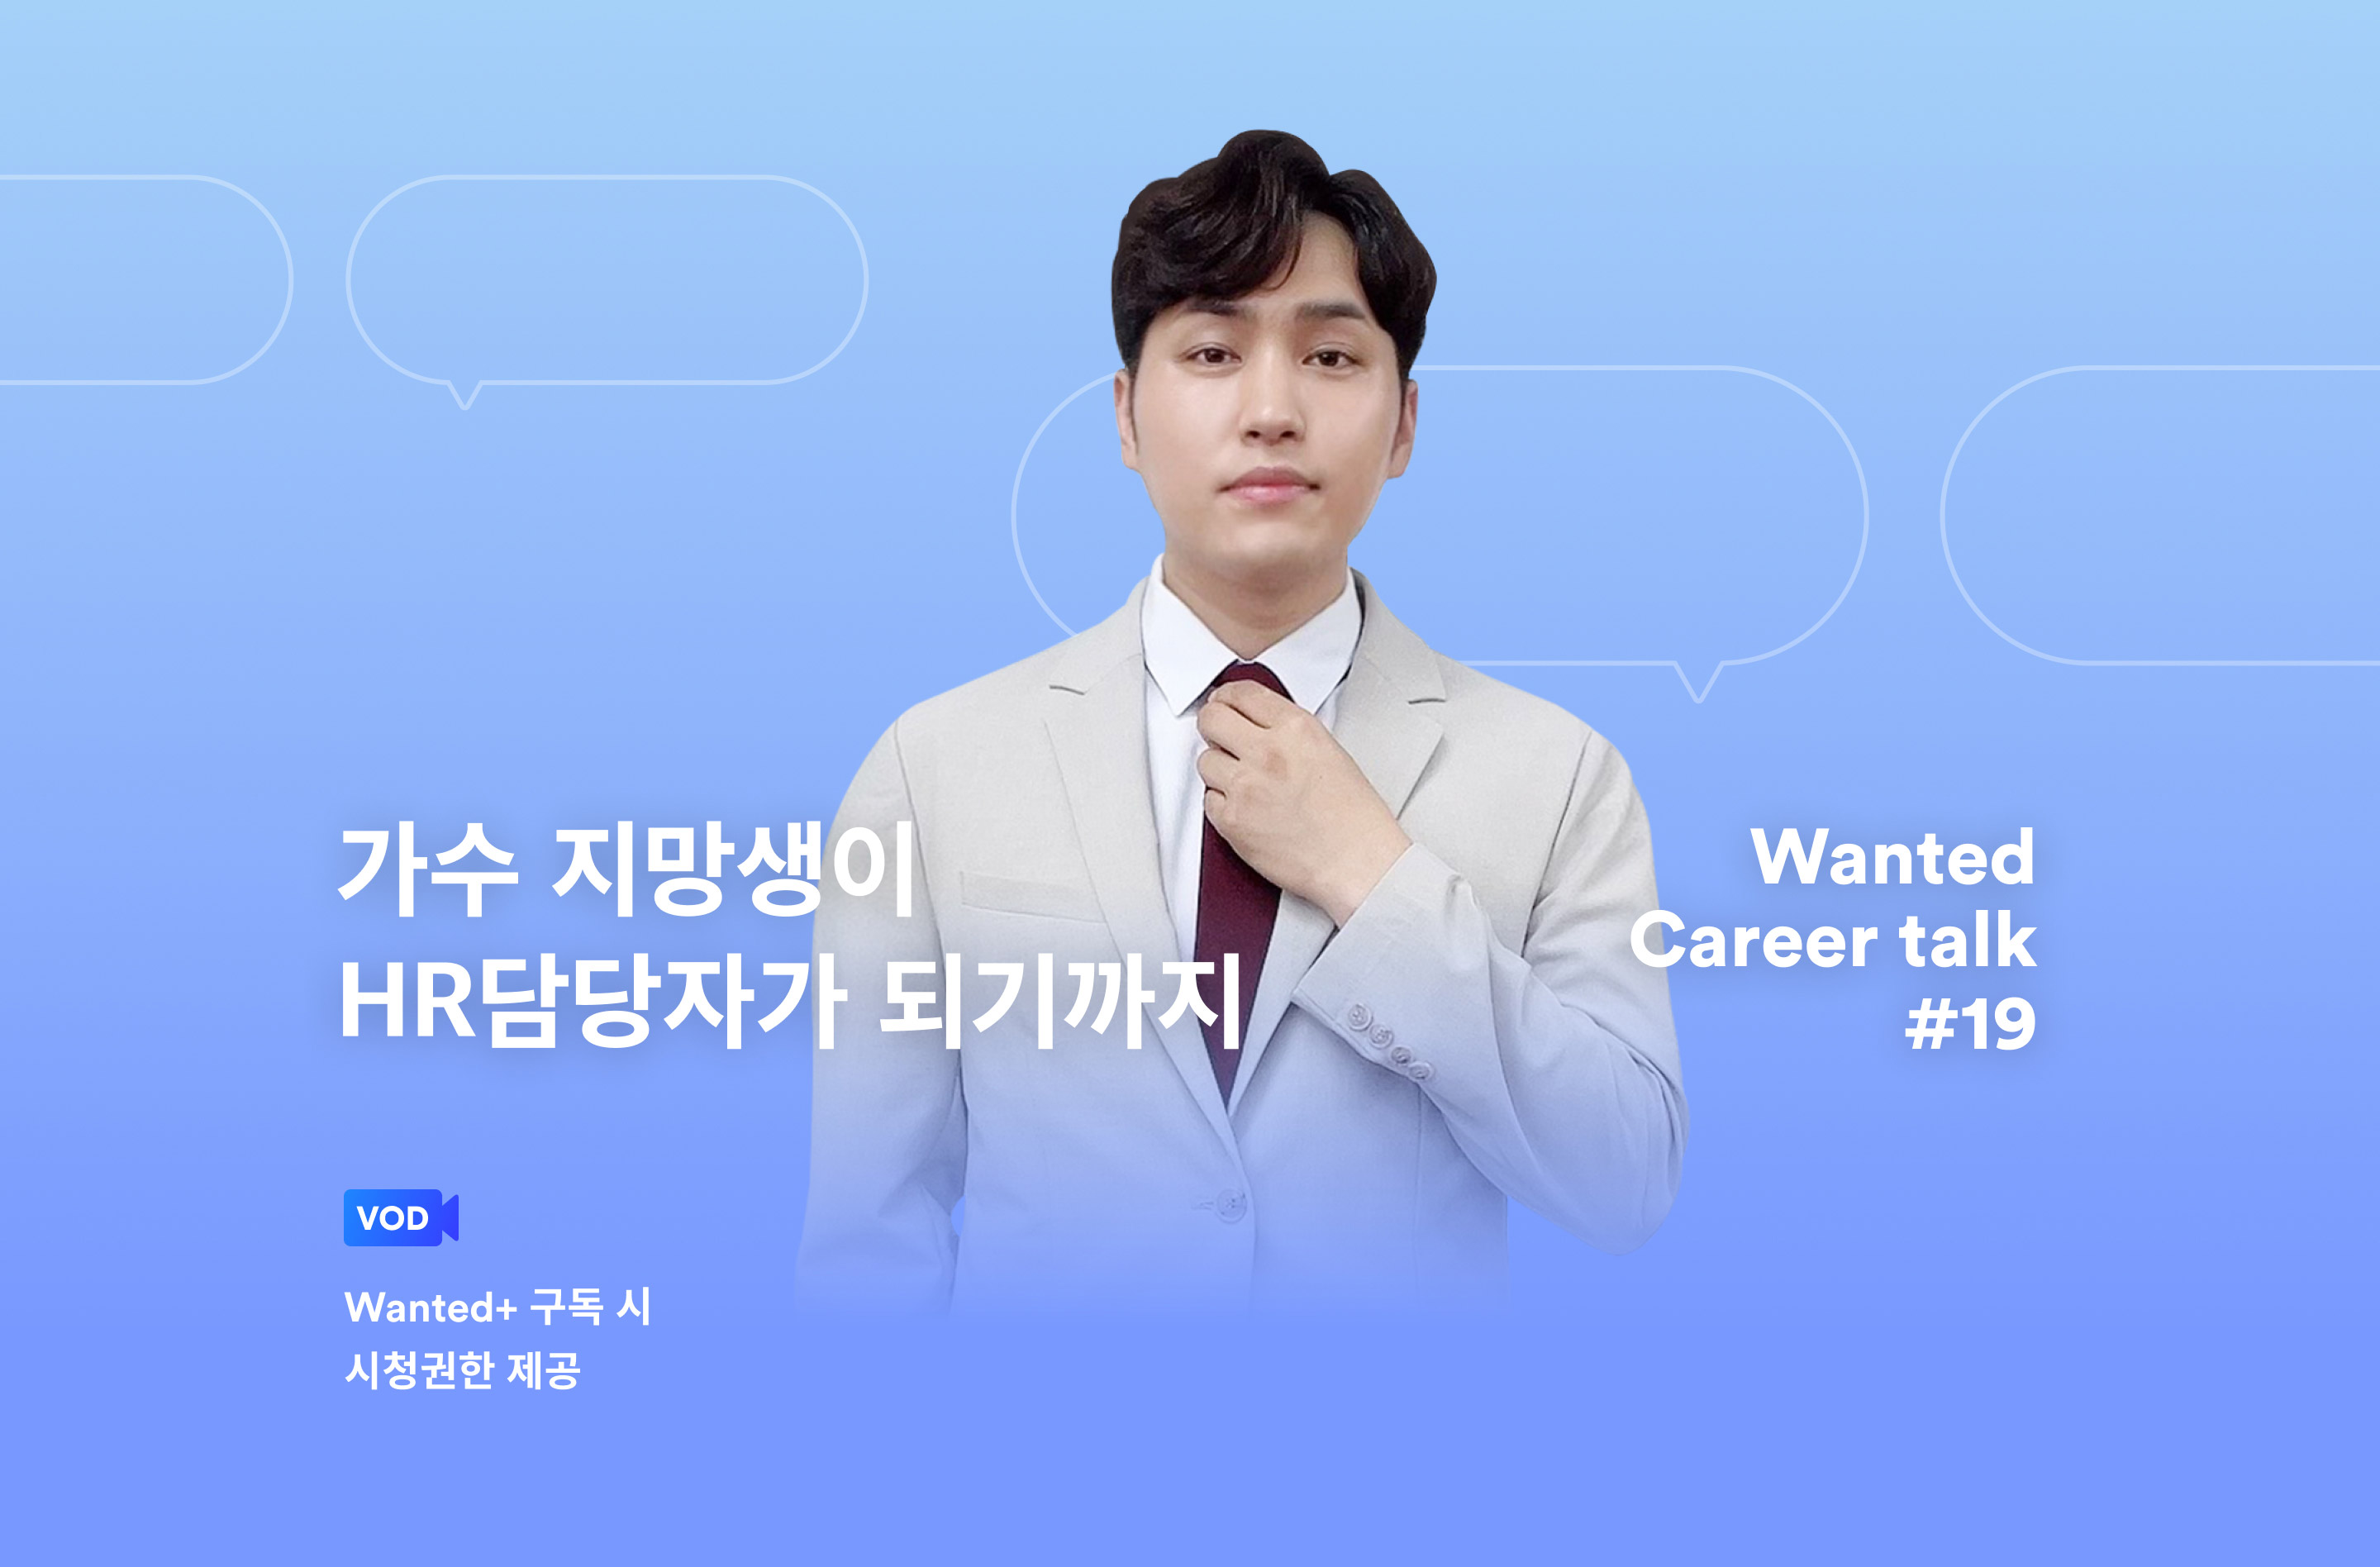 https://static.wanted.co.kr/images/events/1386/76f45c77.jpg